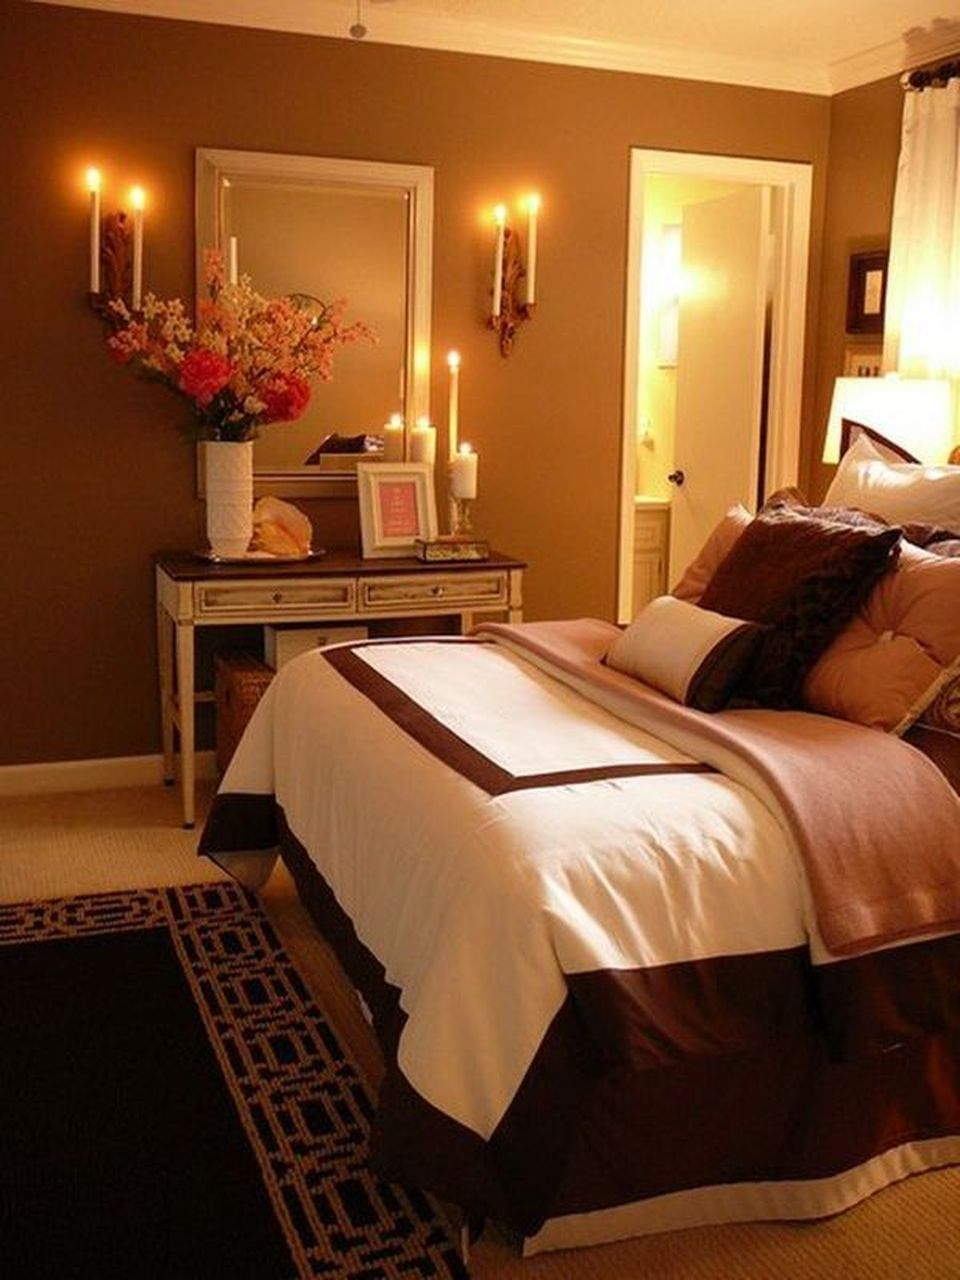 99 Lovely Romantic Bedroom Decorations Ideas for Couples ...